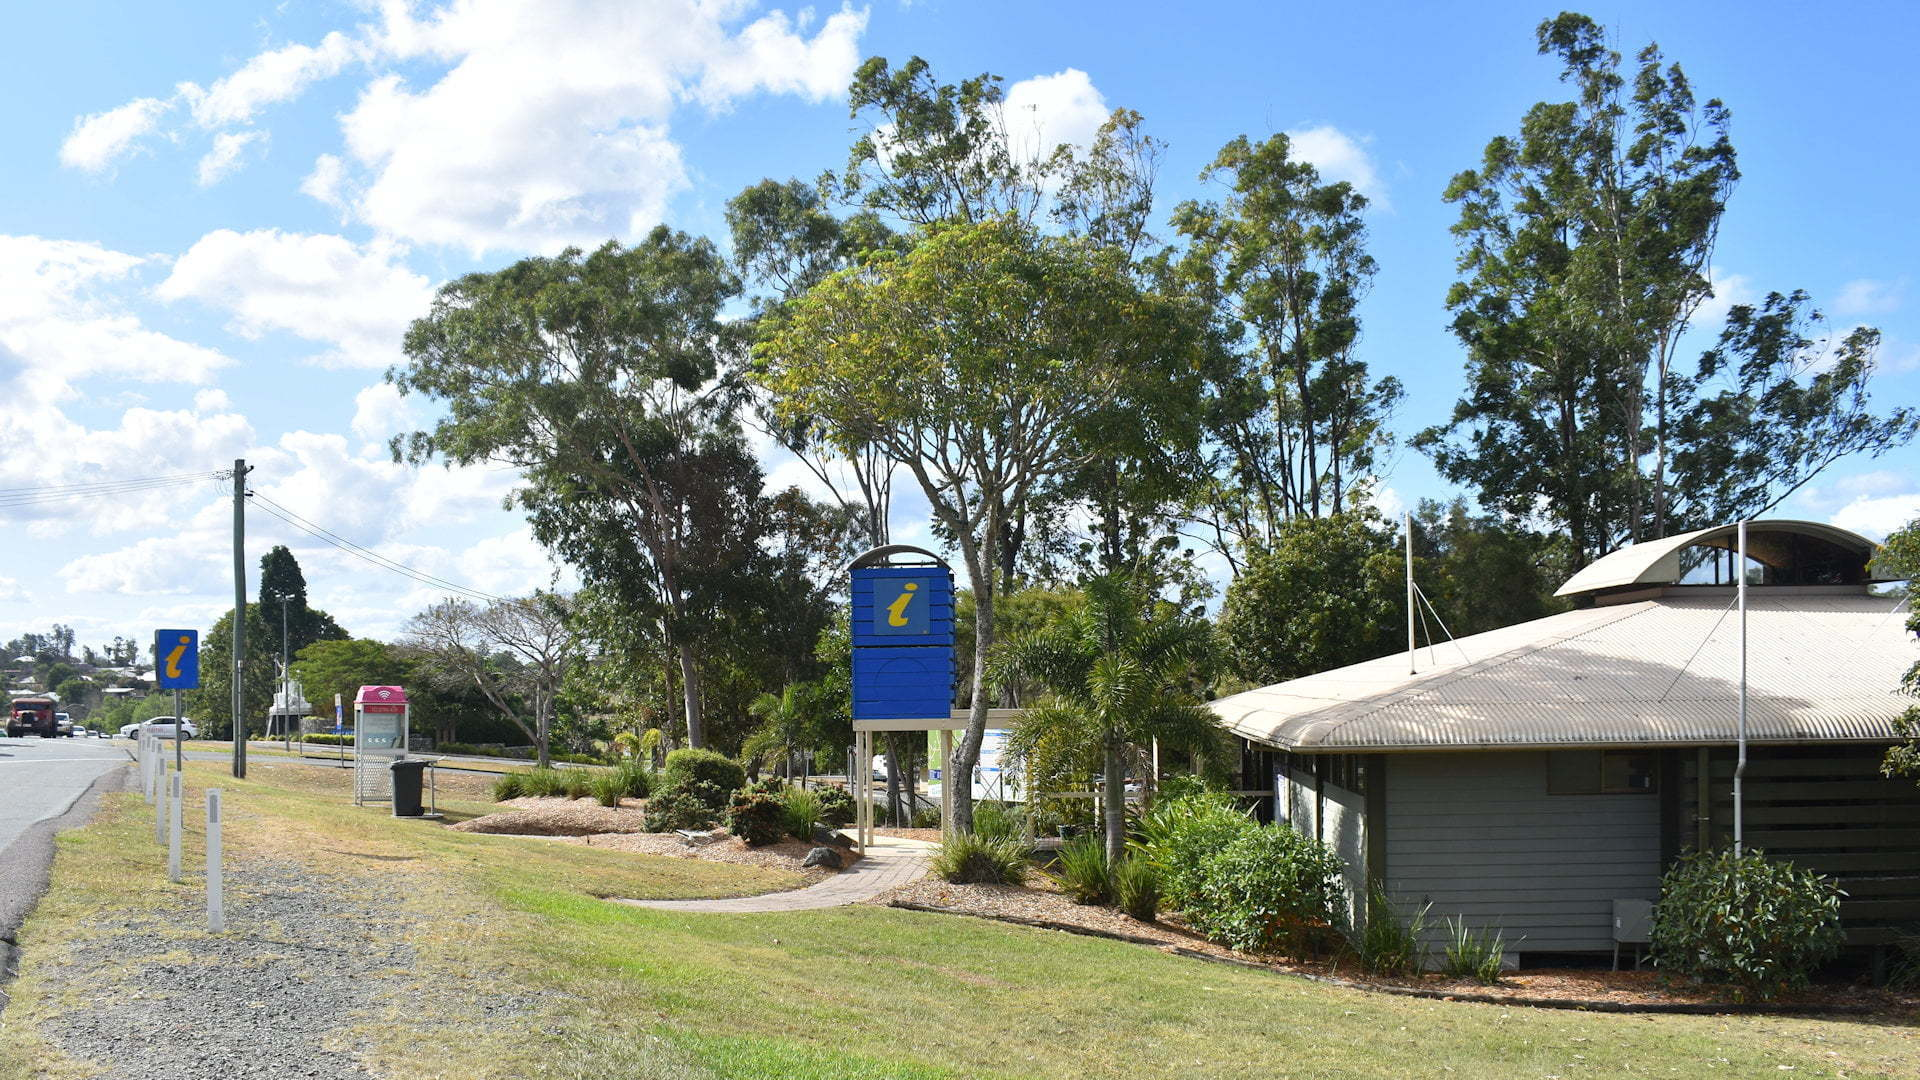 Gympie Region Visitor Information Centre at Lake Alford Recreation Area